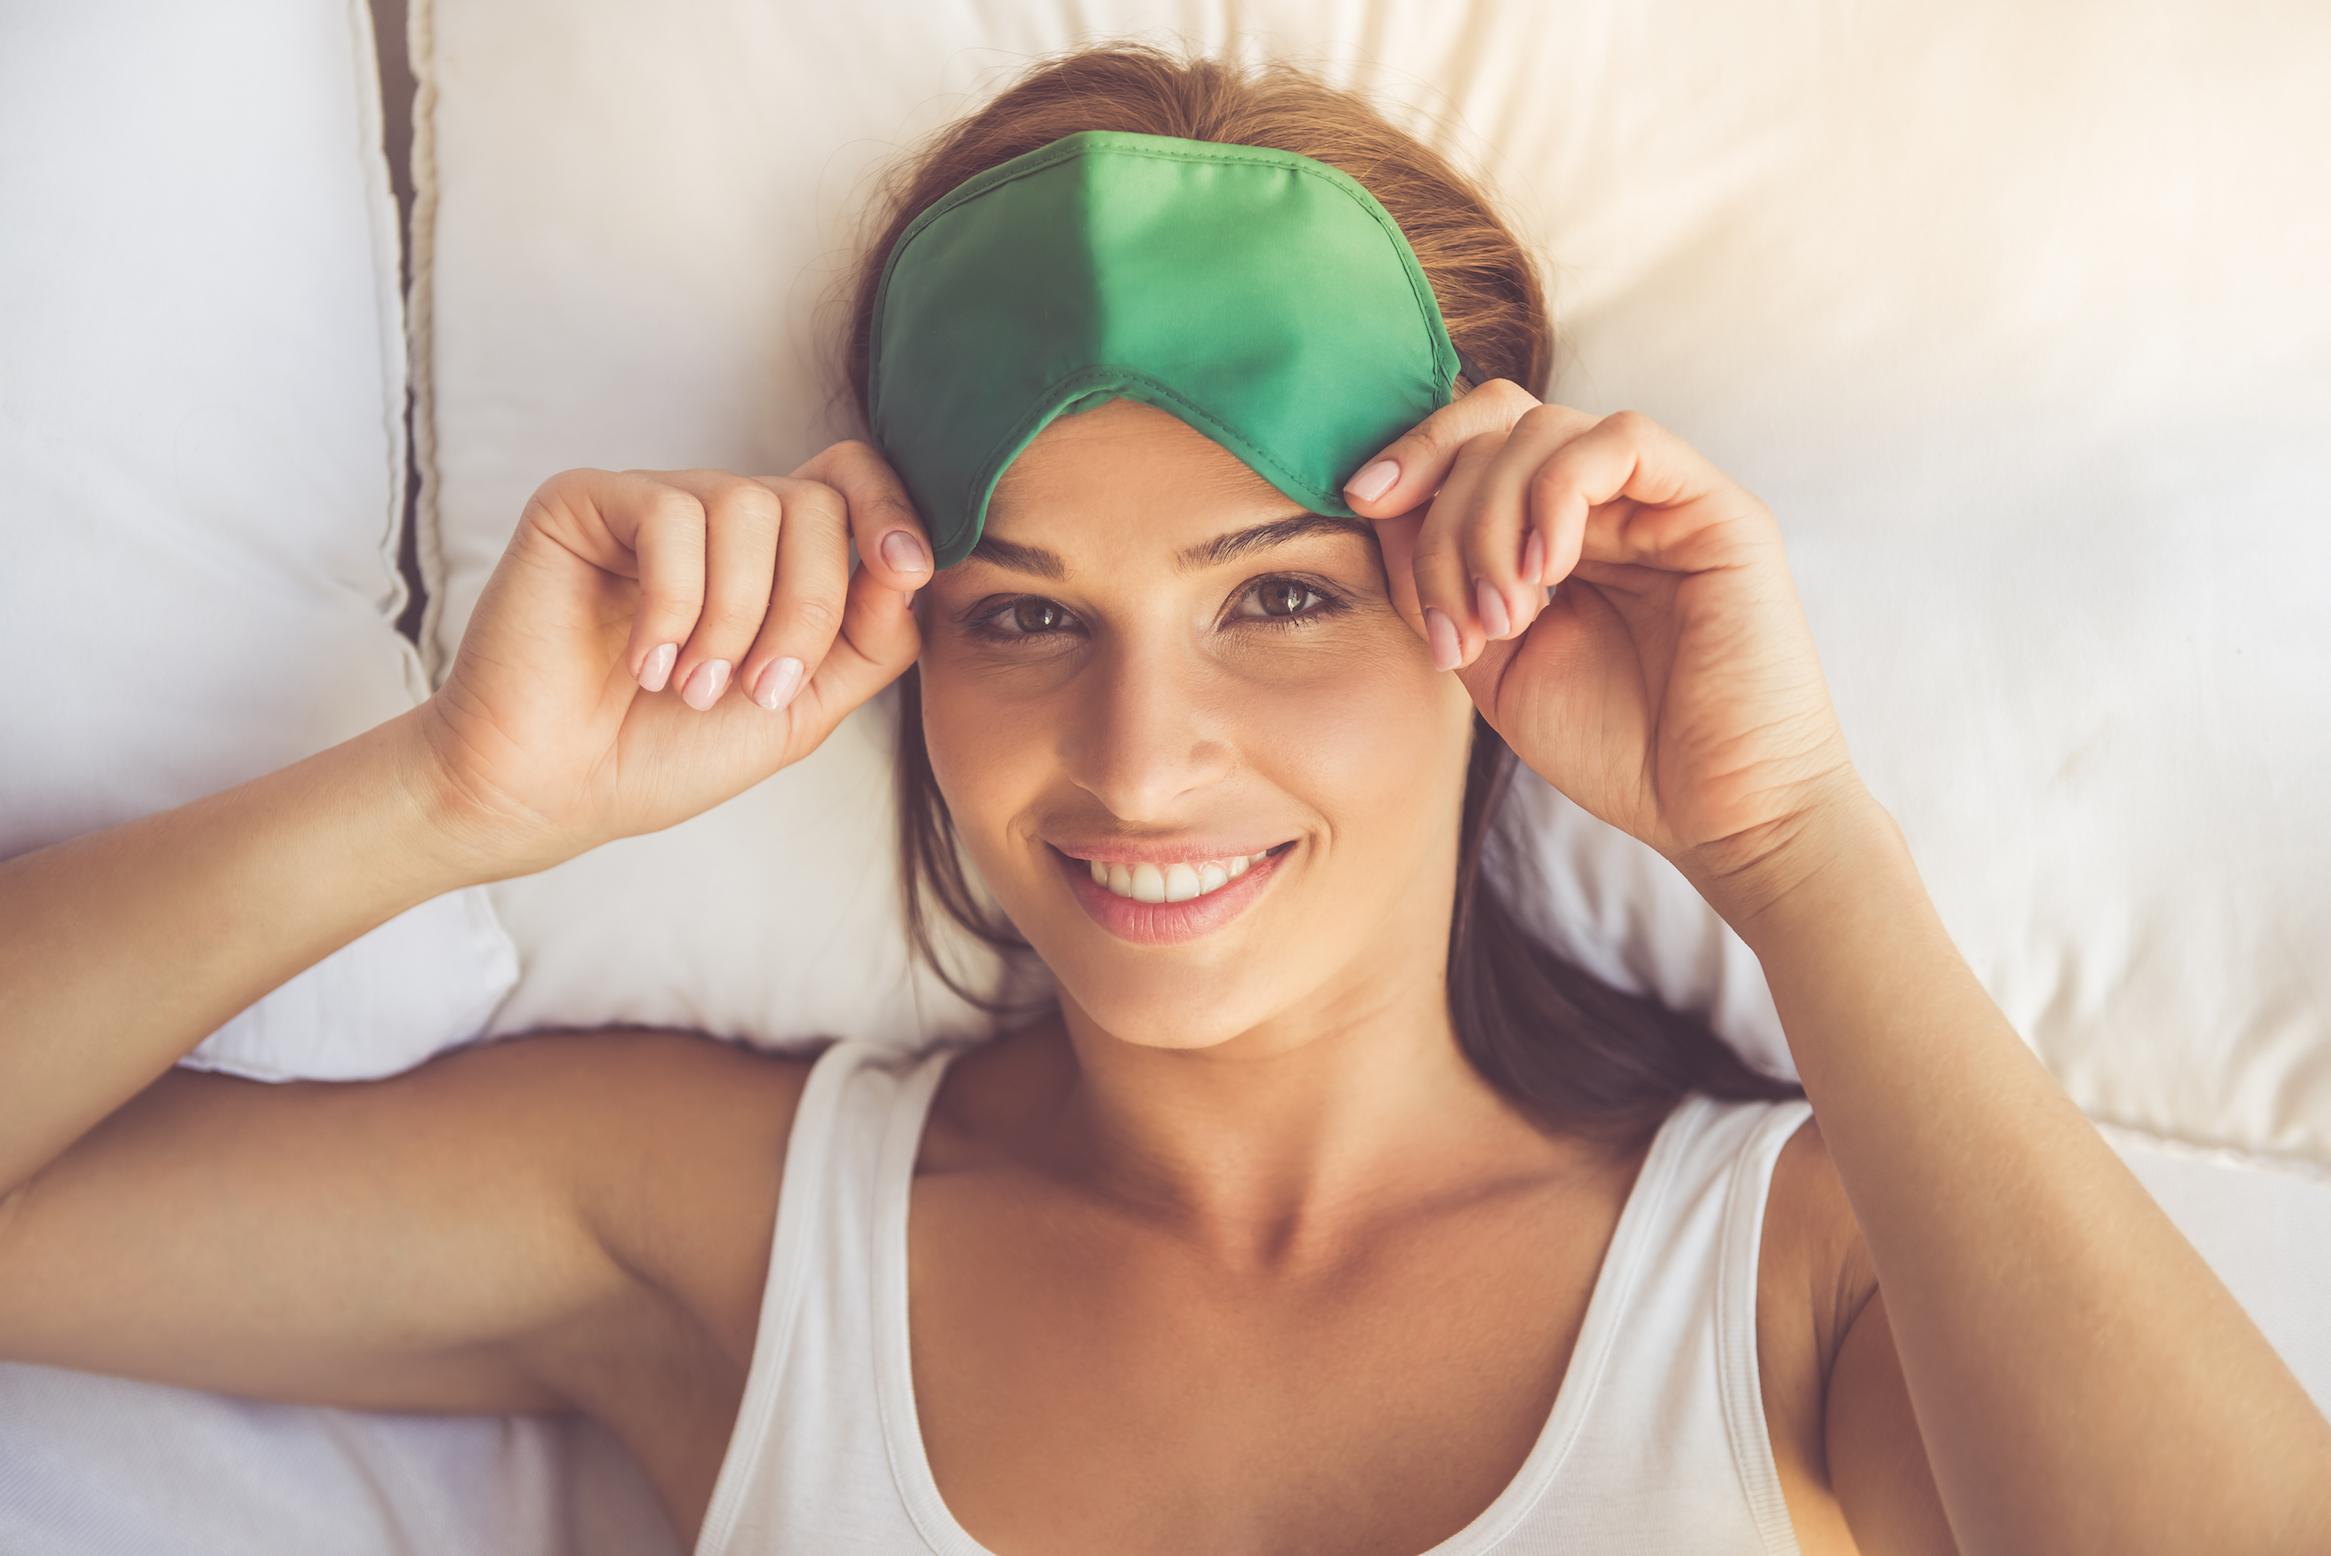 According to a new study, better quality sleep actually reduces your brain's sensitivity to fear and otherwise traumatic stimuli.